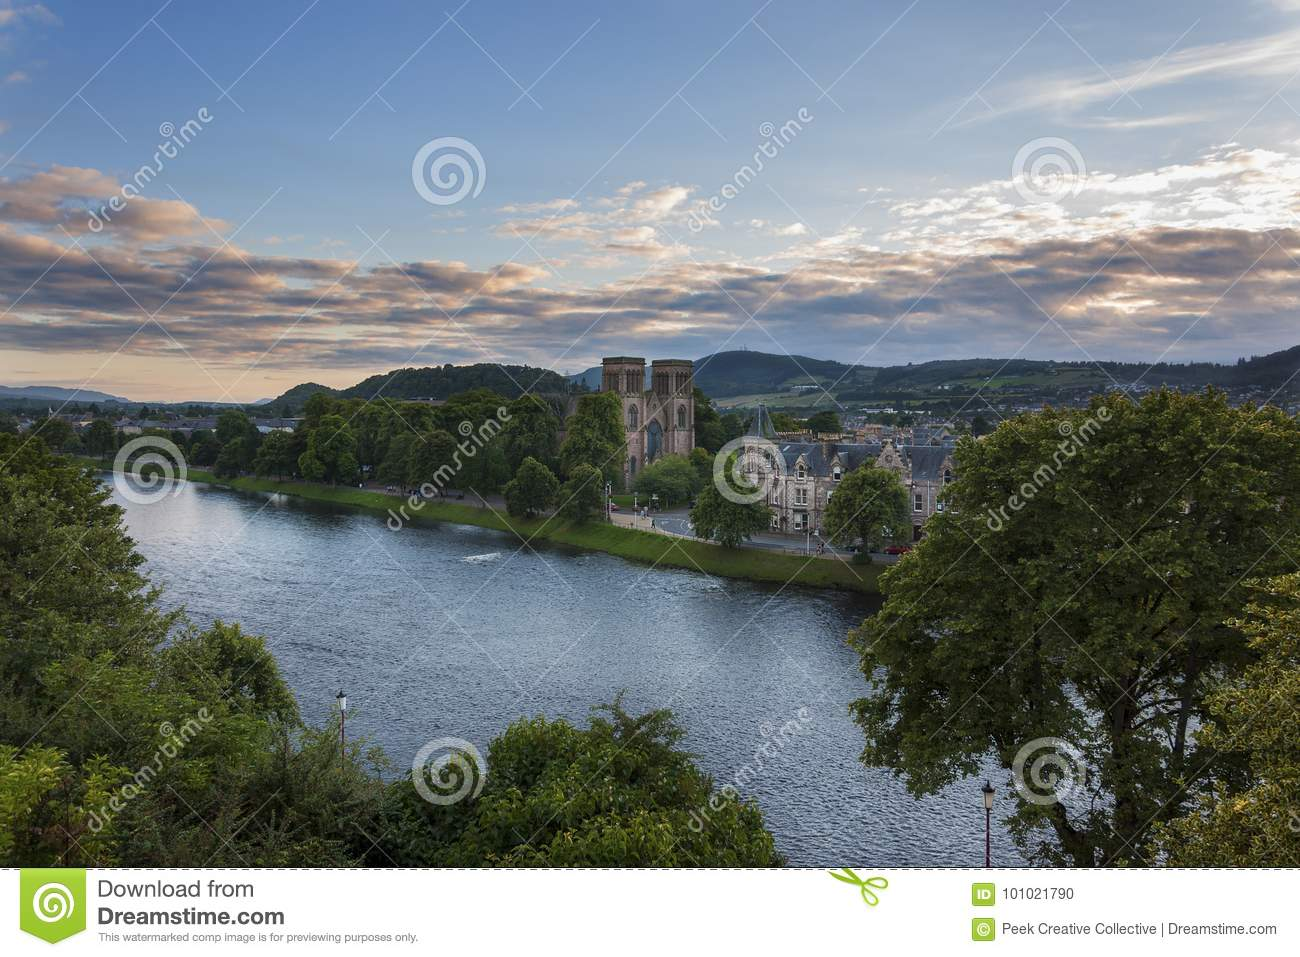 View of the city of Inverness from the banks of the Ness River in Scotland, United Kingdom